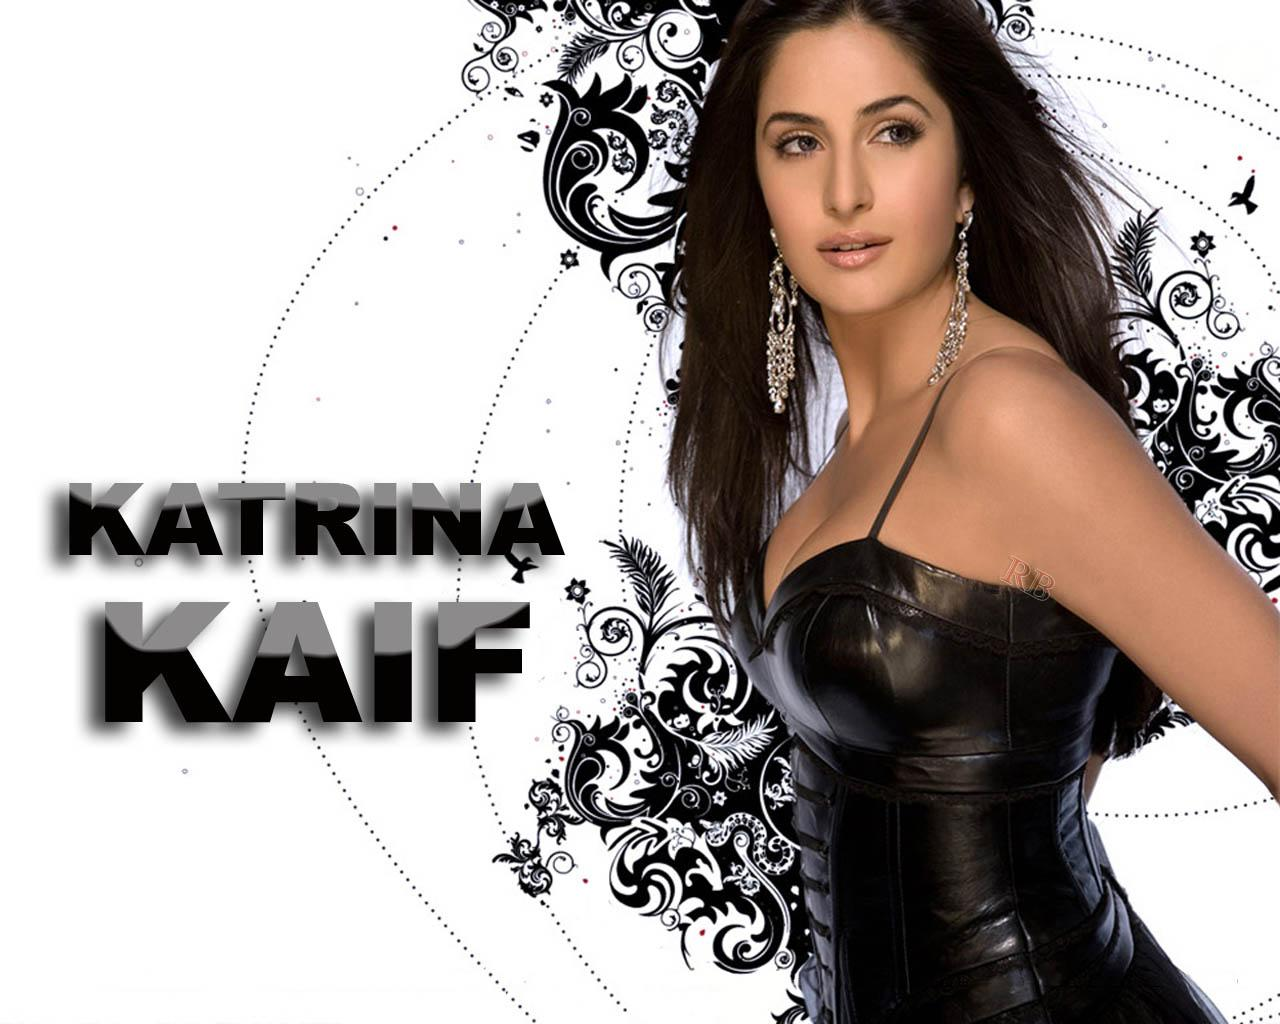 Katrina+Kaif+Without+Clothes+Wallpapers+Cute+And+Lovely+katrina+In